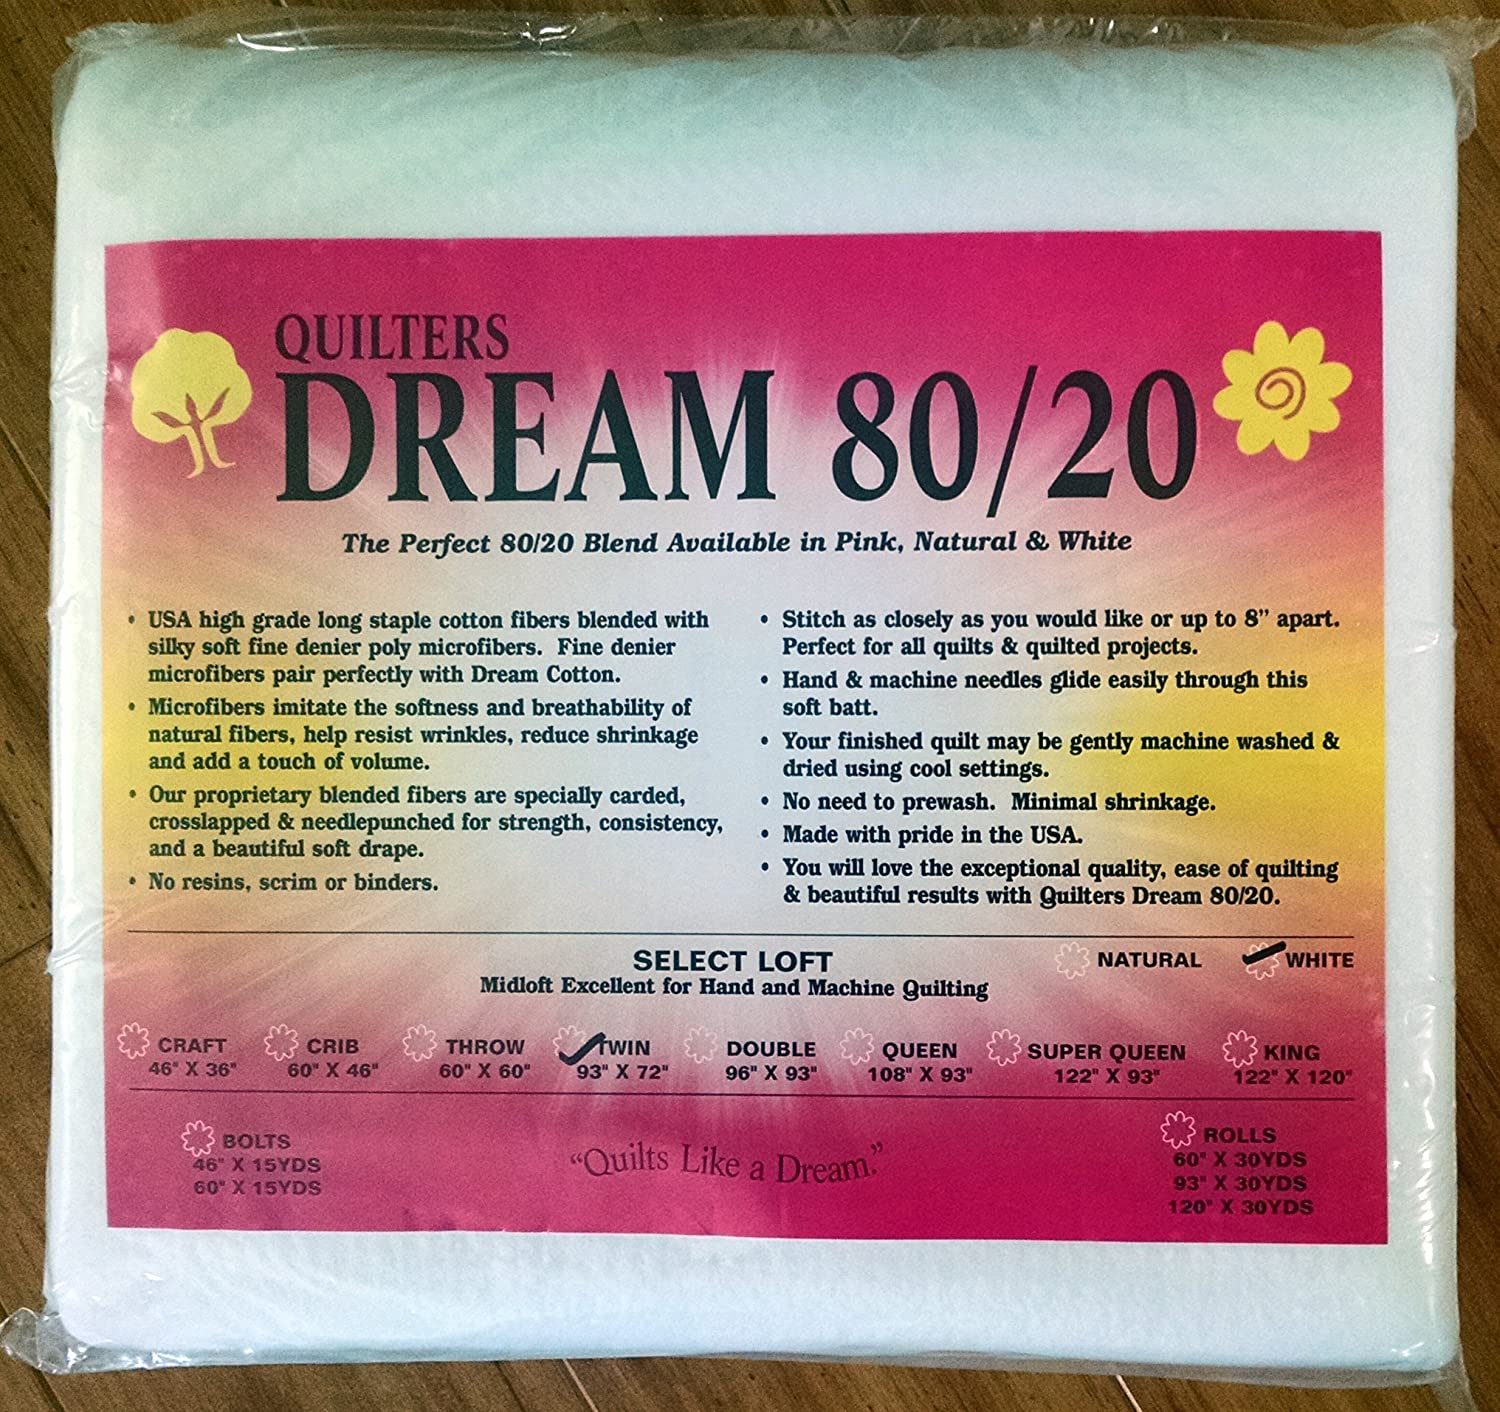 Quilter's Dream 80/20, White, Select Loft Batting - Twin Size 93X72 Quilter' s Dream 80/20 Quilter' s Dream Batting EWTN